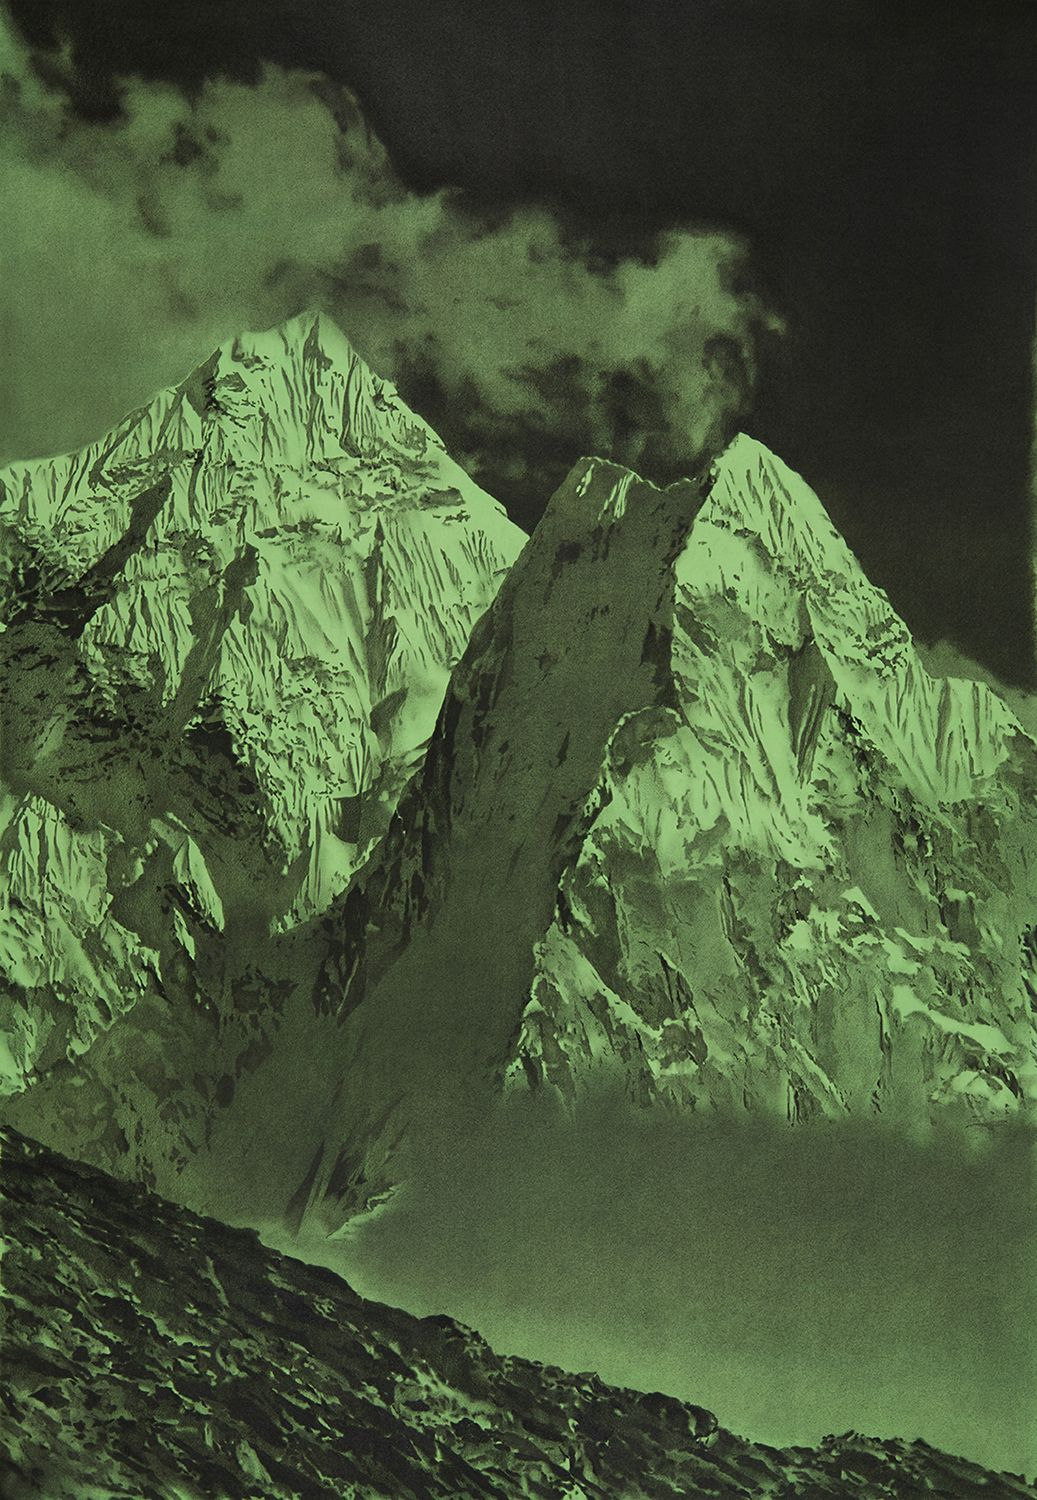 A highly-detailed image of Mt. Everest done in black on an electric green background.